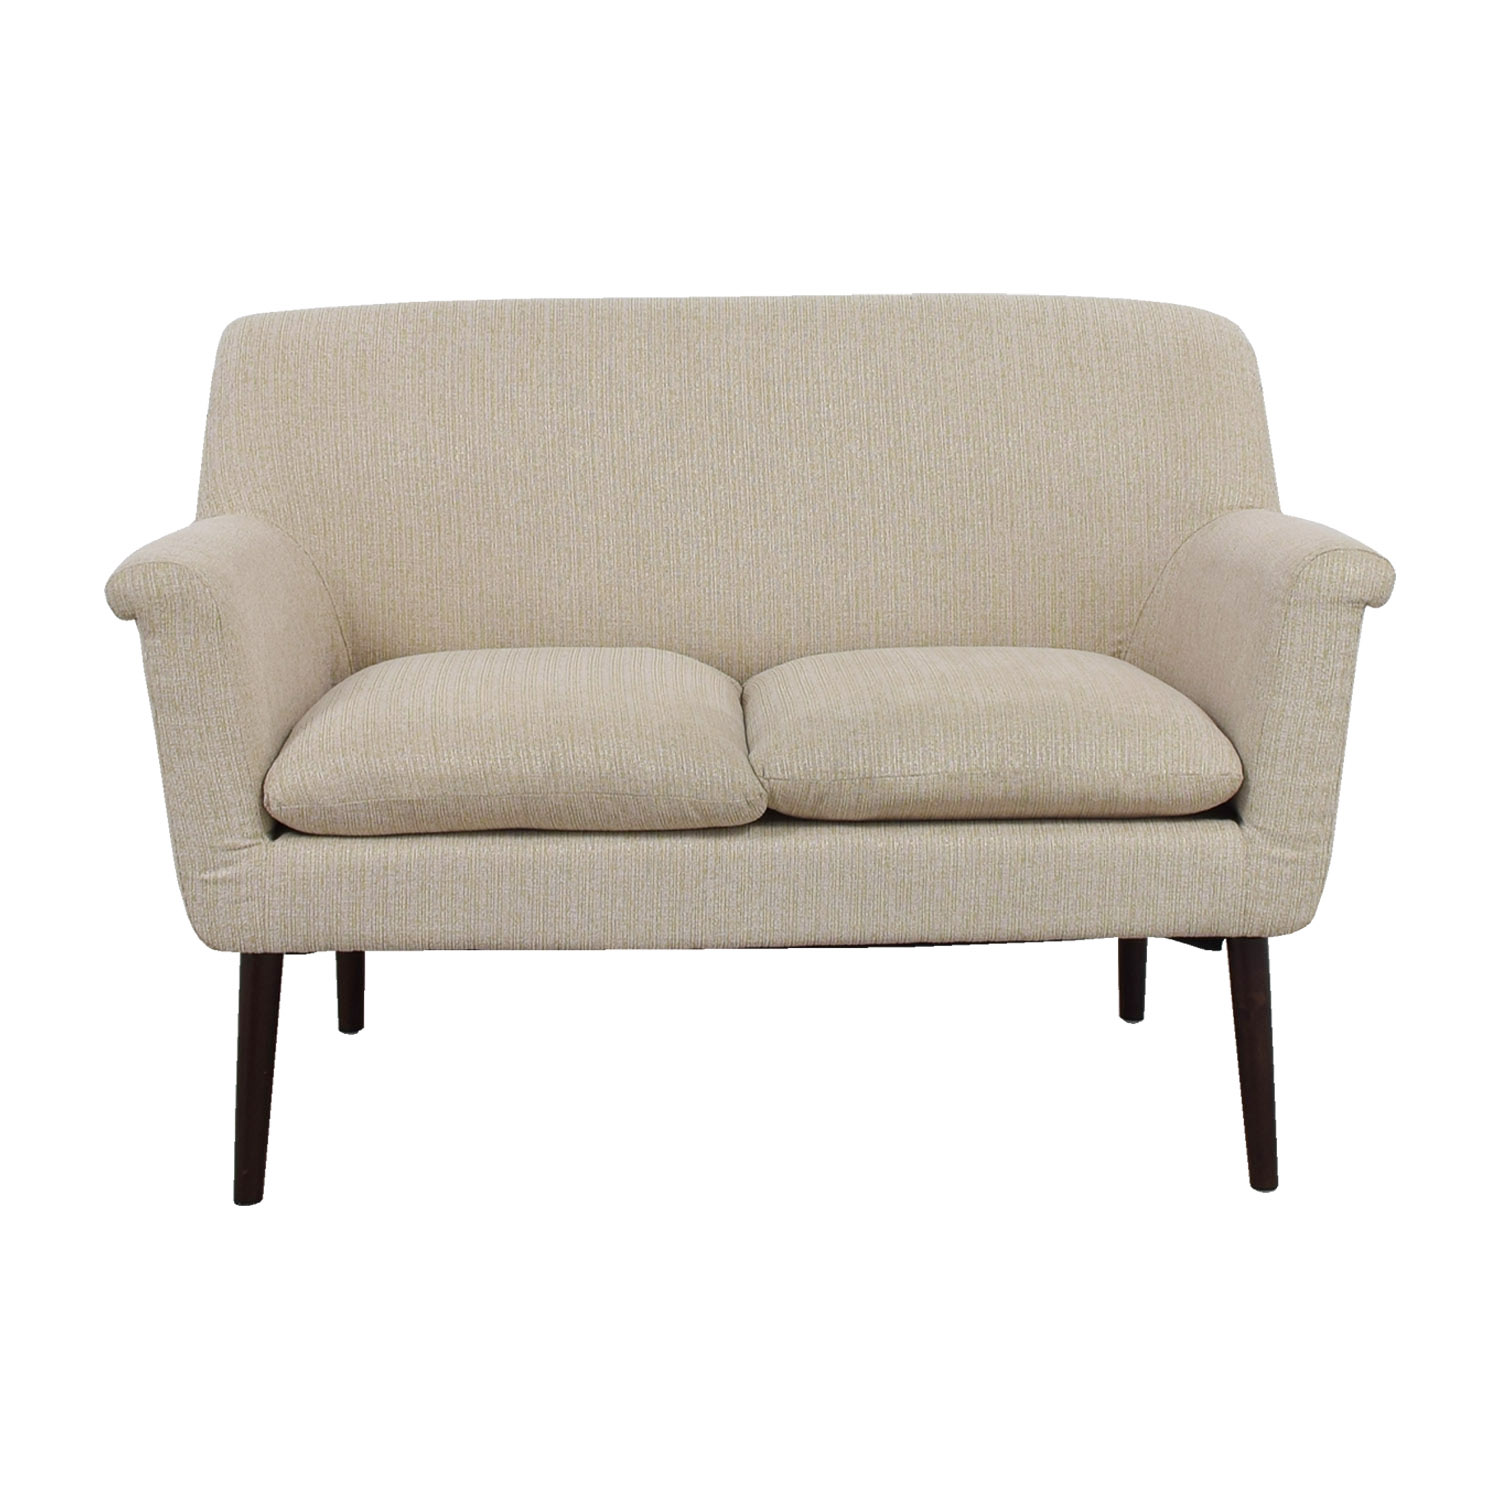 shop Madison Park Davenport Beige Rolled-Arm Settee Madison Park Davenport Loveseats